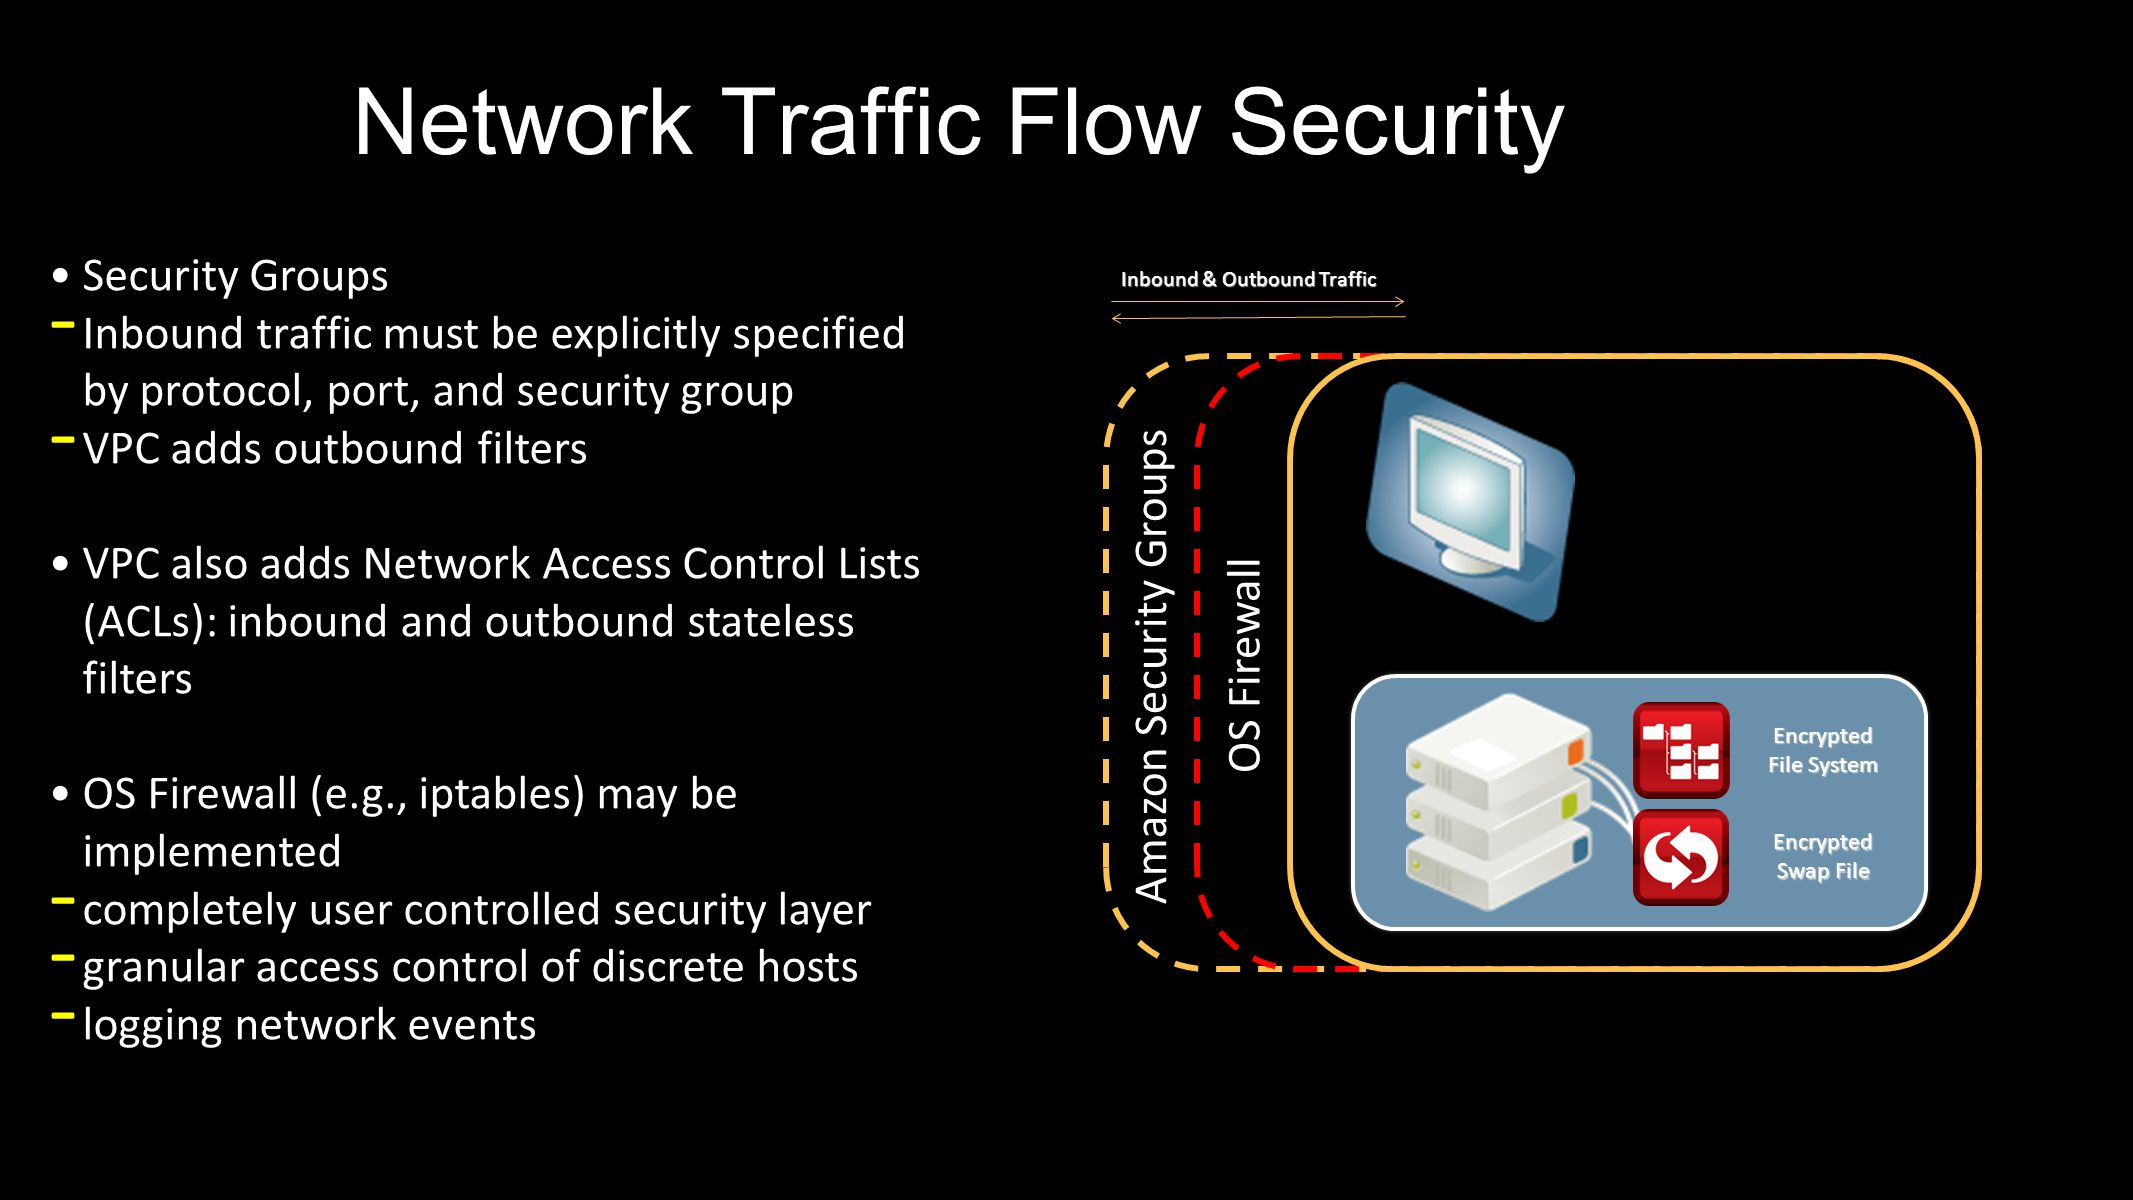 Network Traffic Flow Security